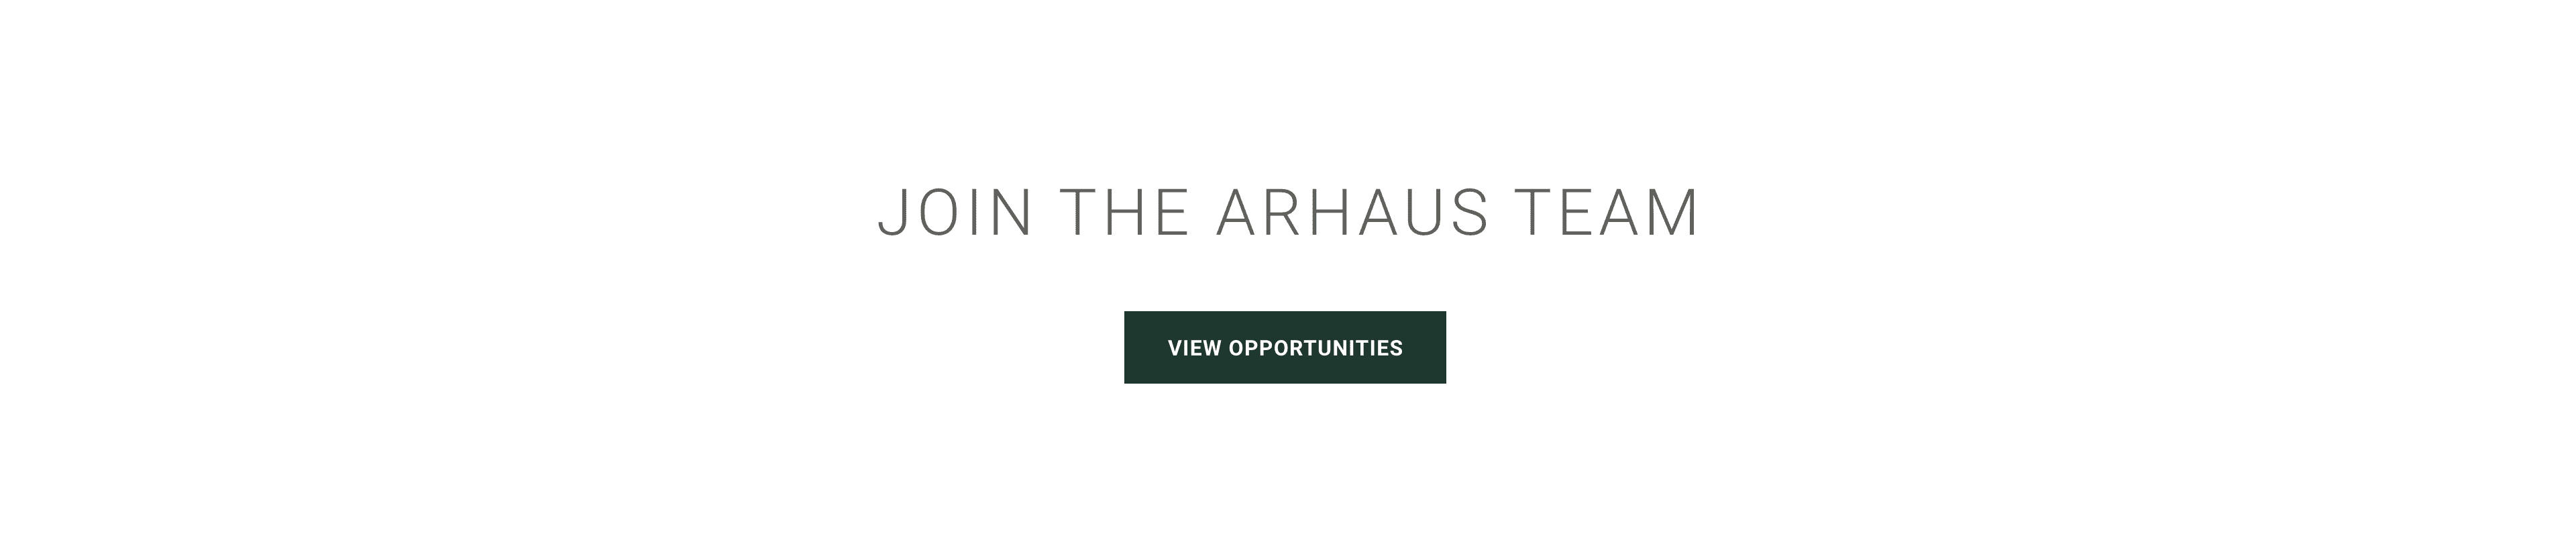 Join the Arhaus Team